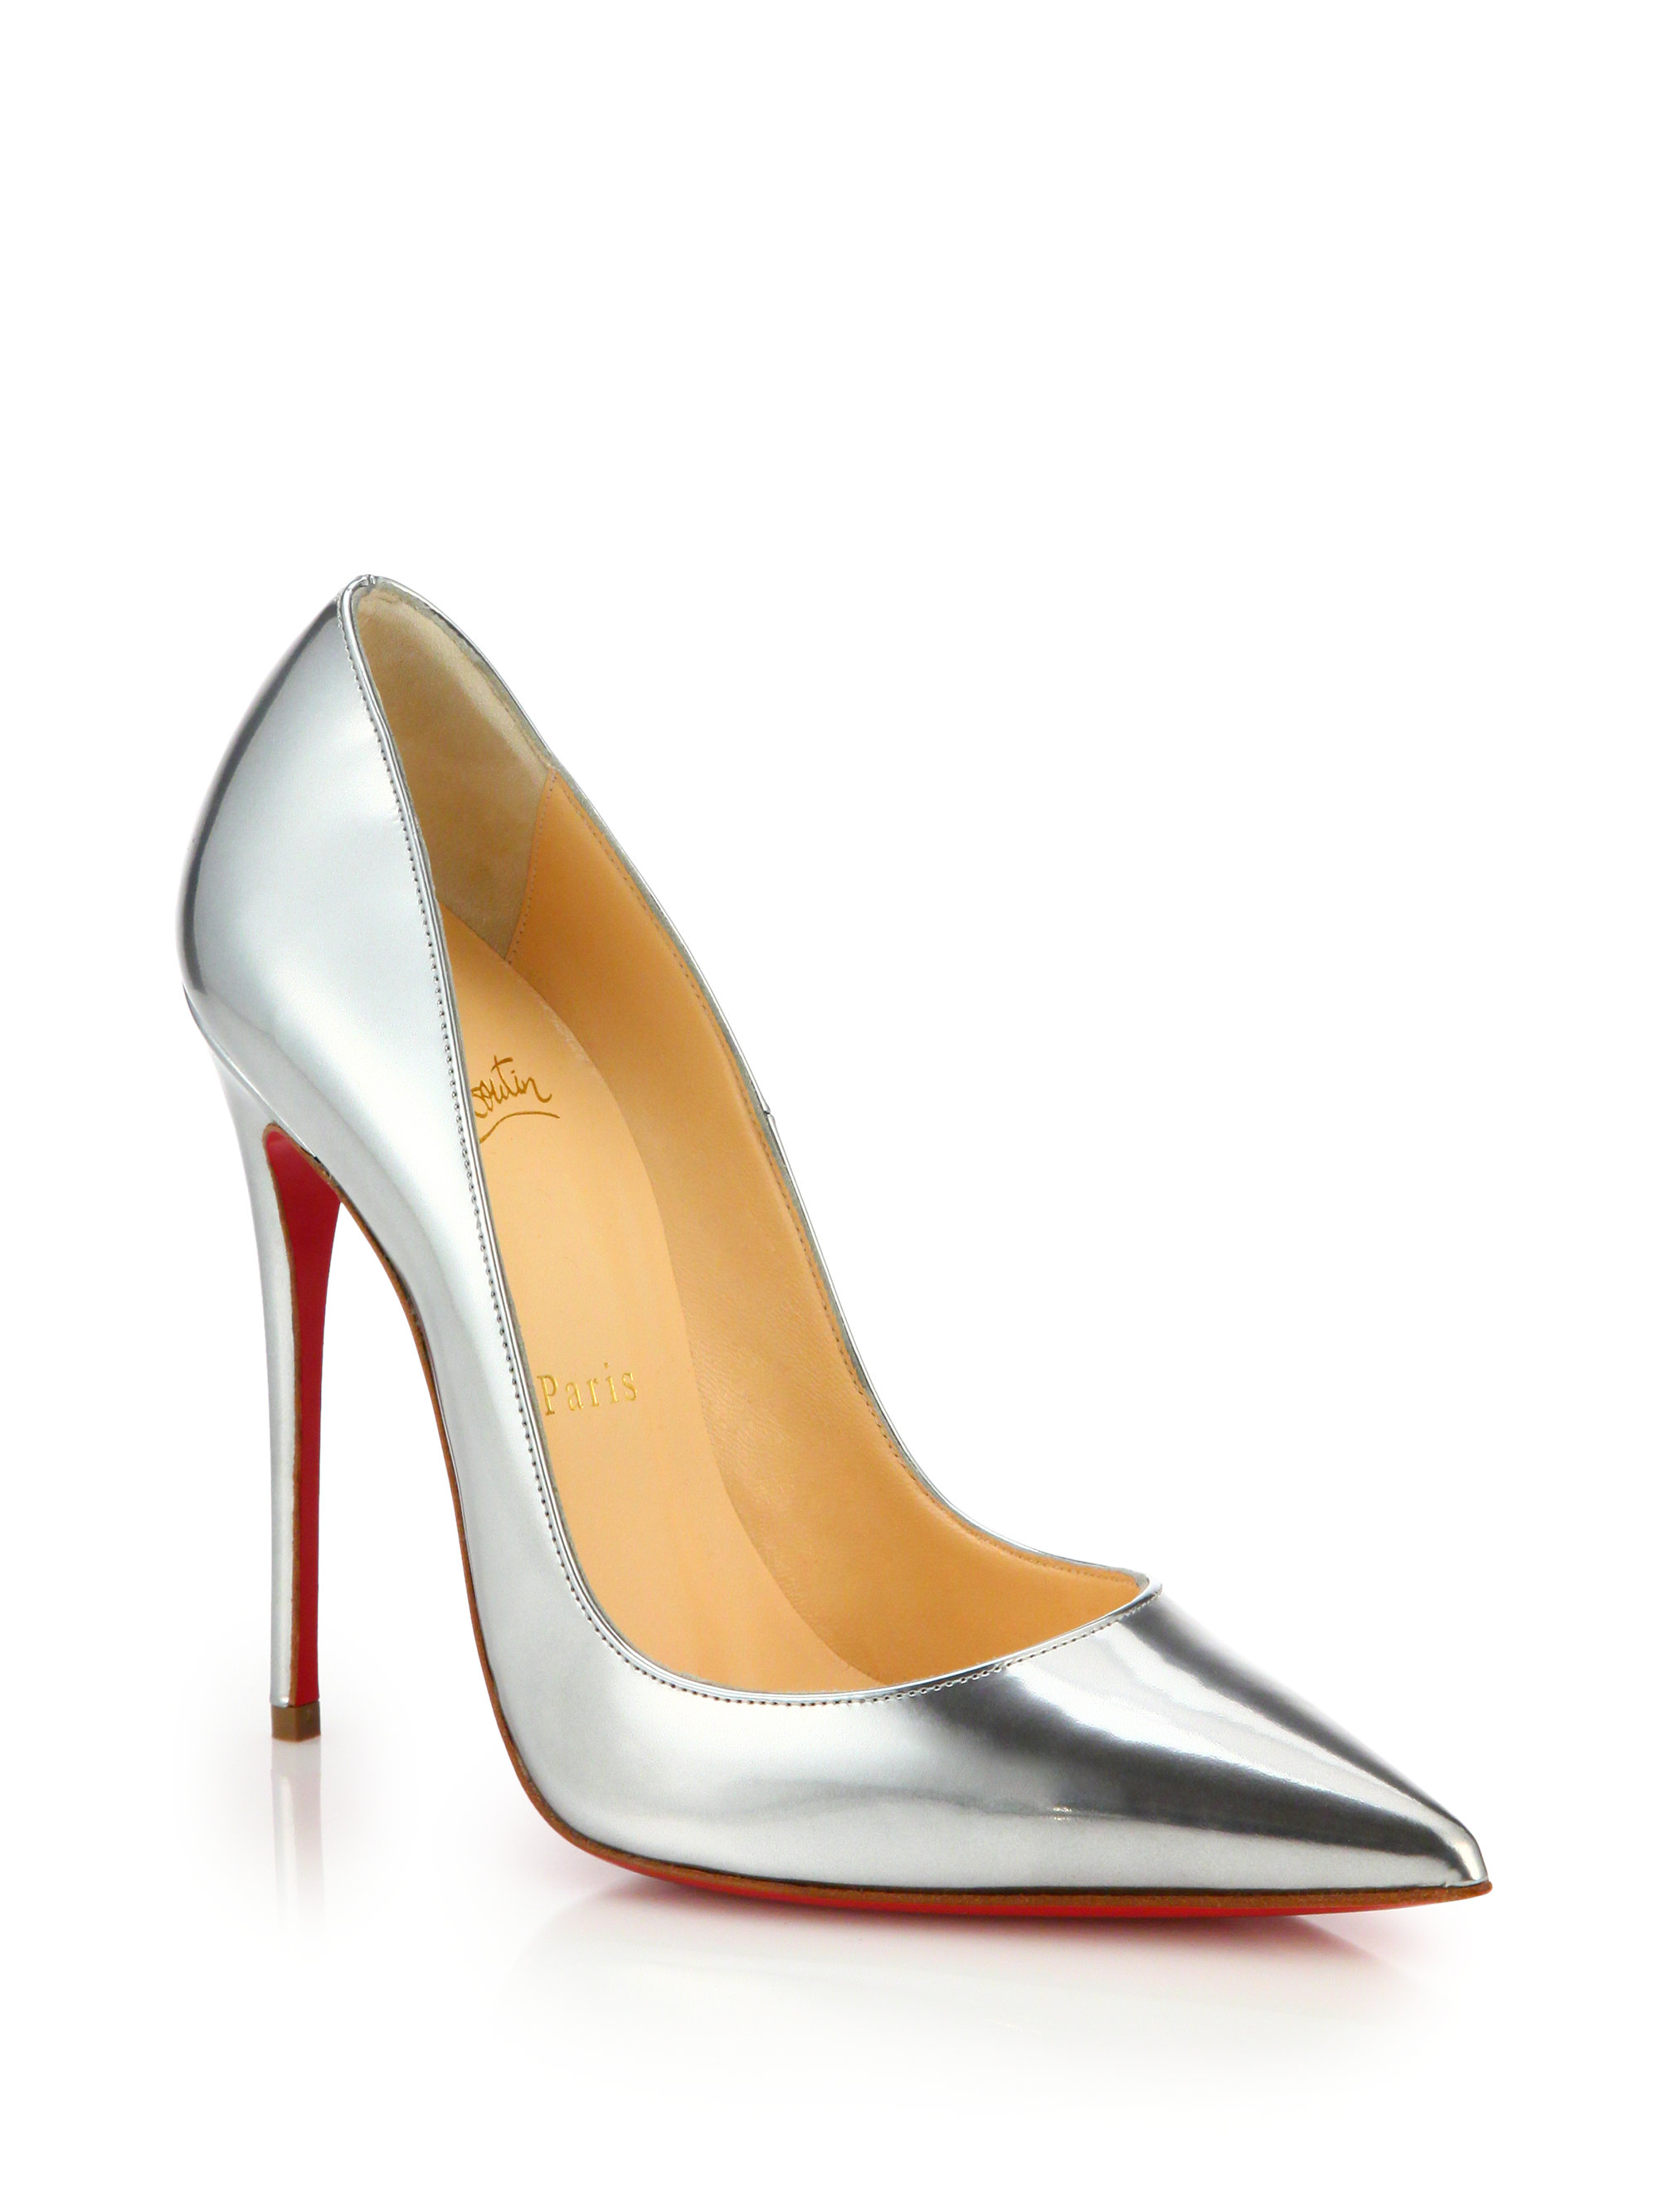 christian louboutin replica wedding shoes